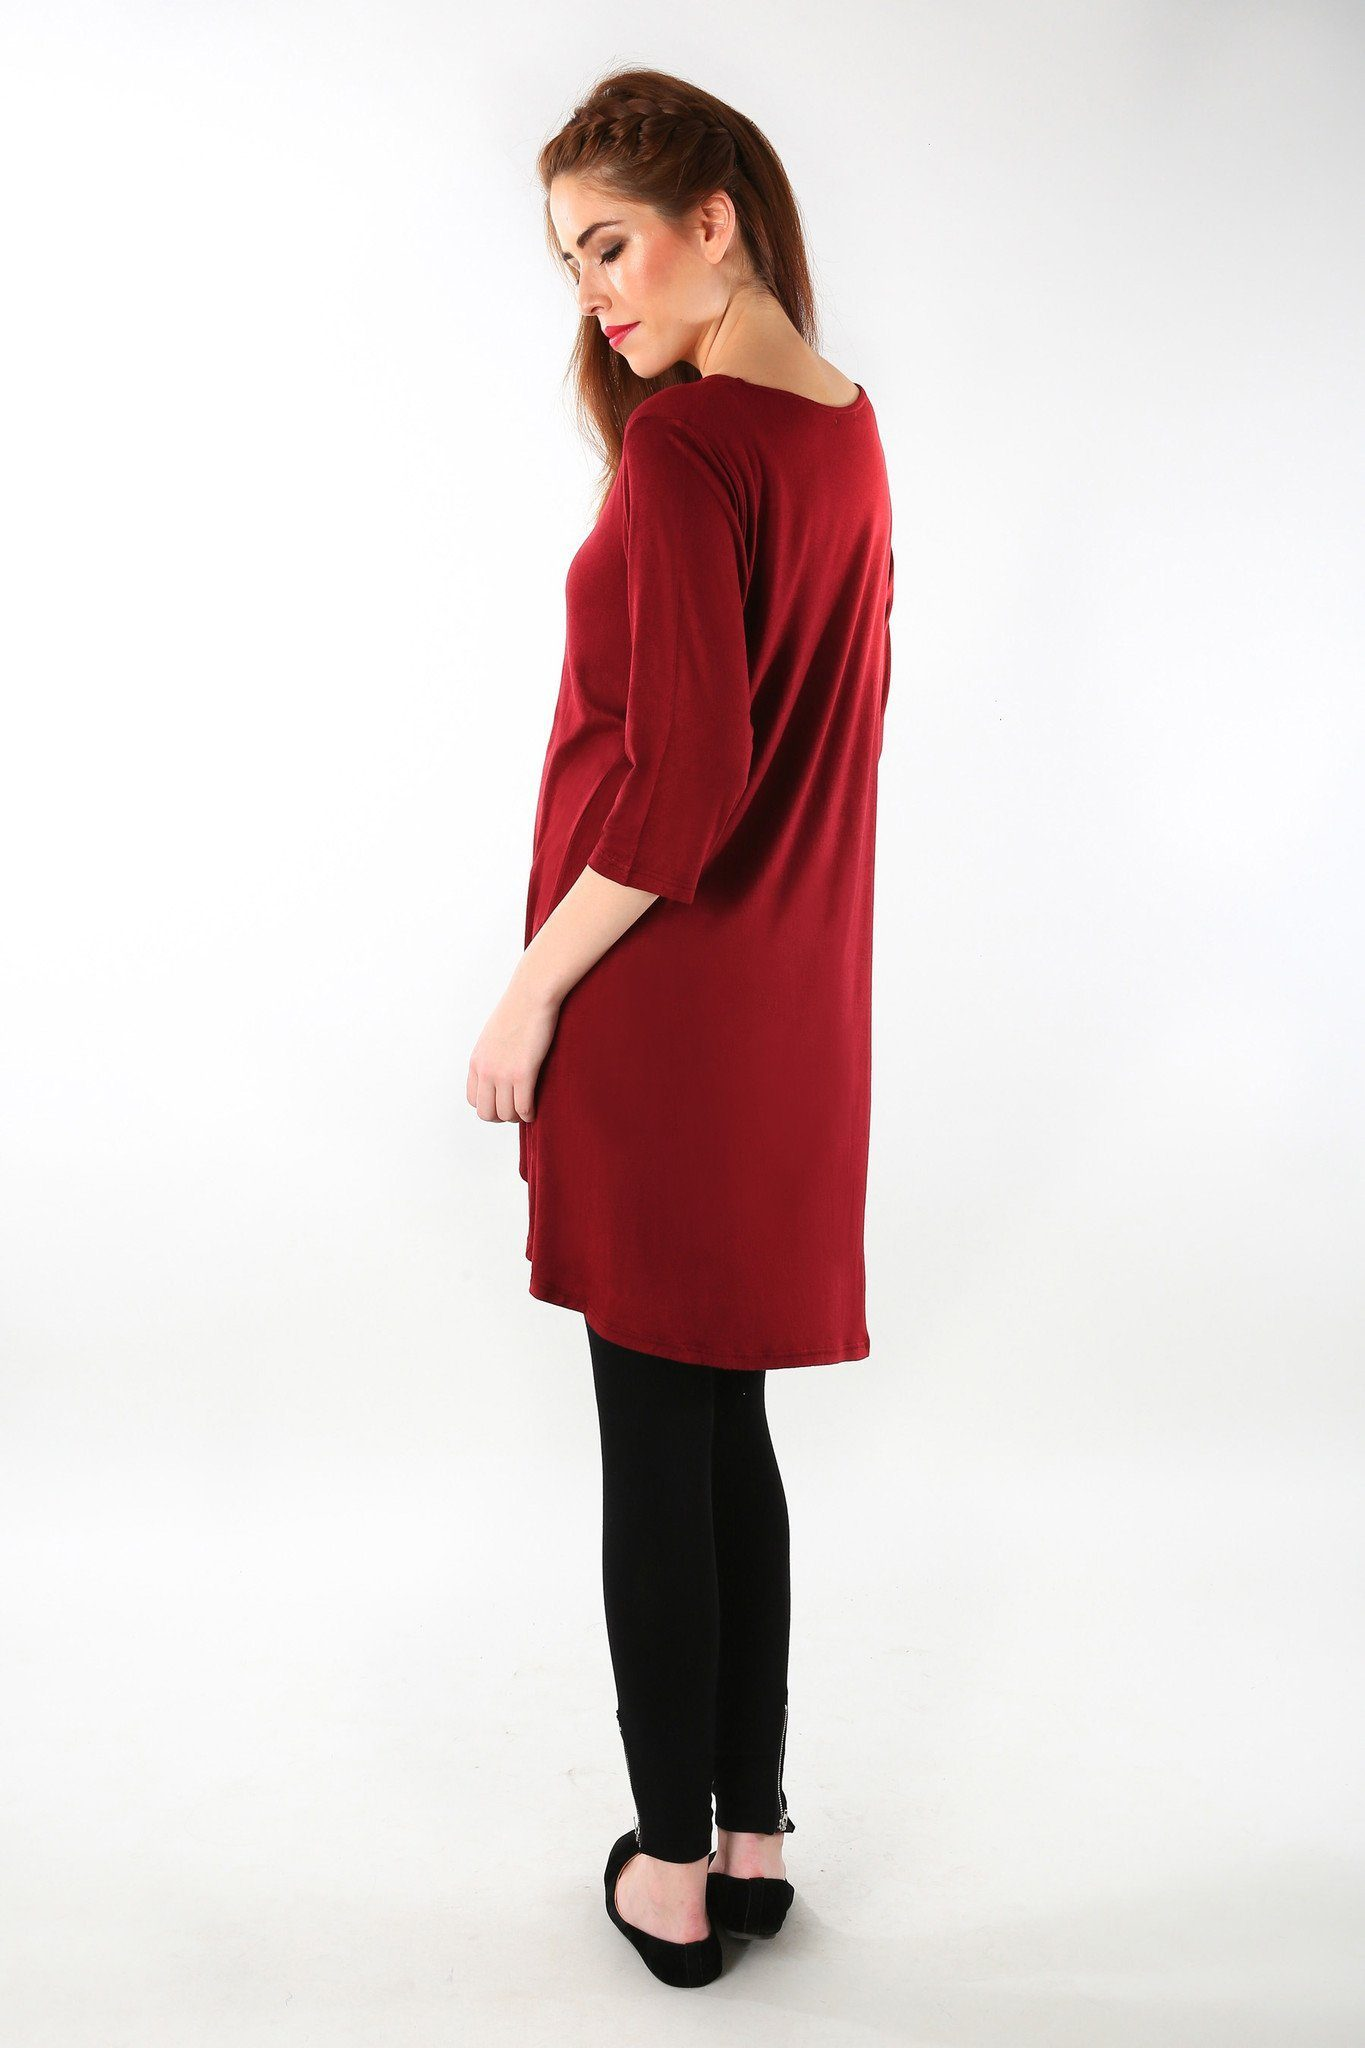 Burgundy Front Short Maternity Top - MOMZJOY.COM - 5